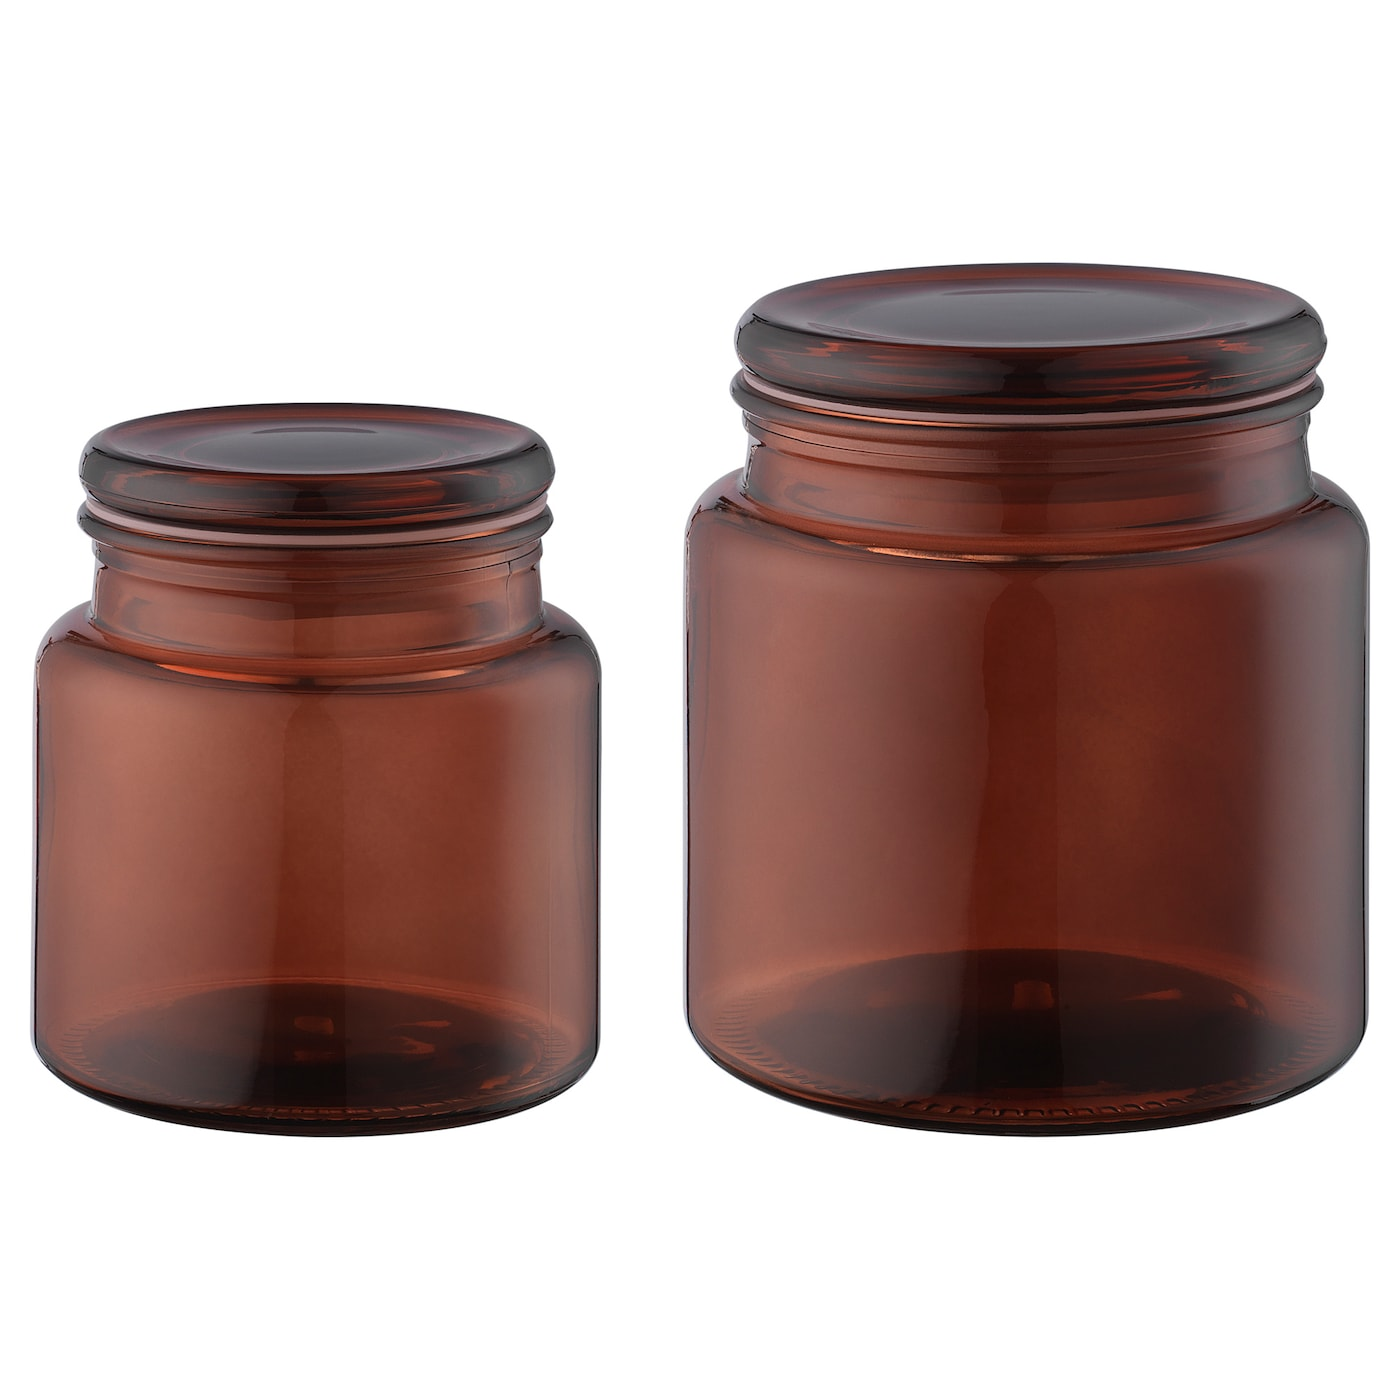 IKEA SEGERSJÖN jar with lid, set of 2 Helps you organise cotton wool and hair clips.